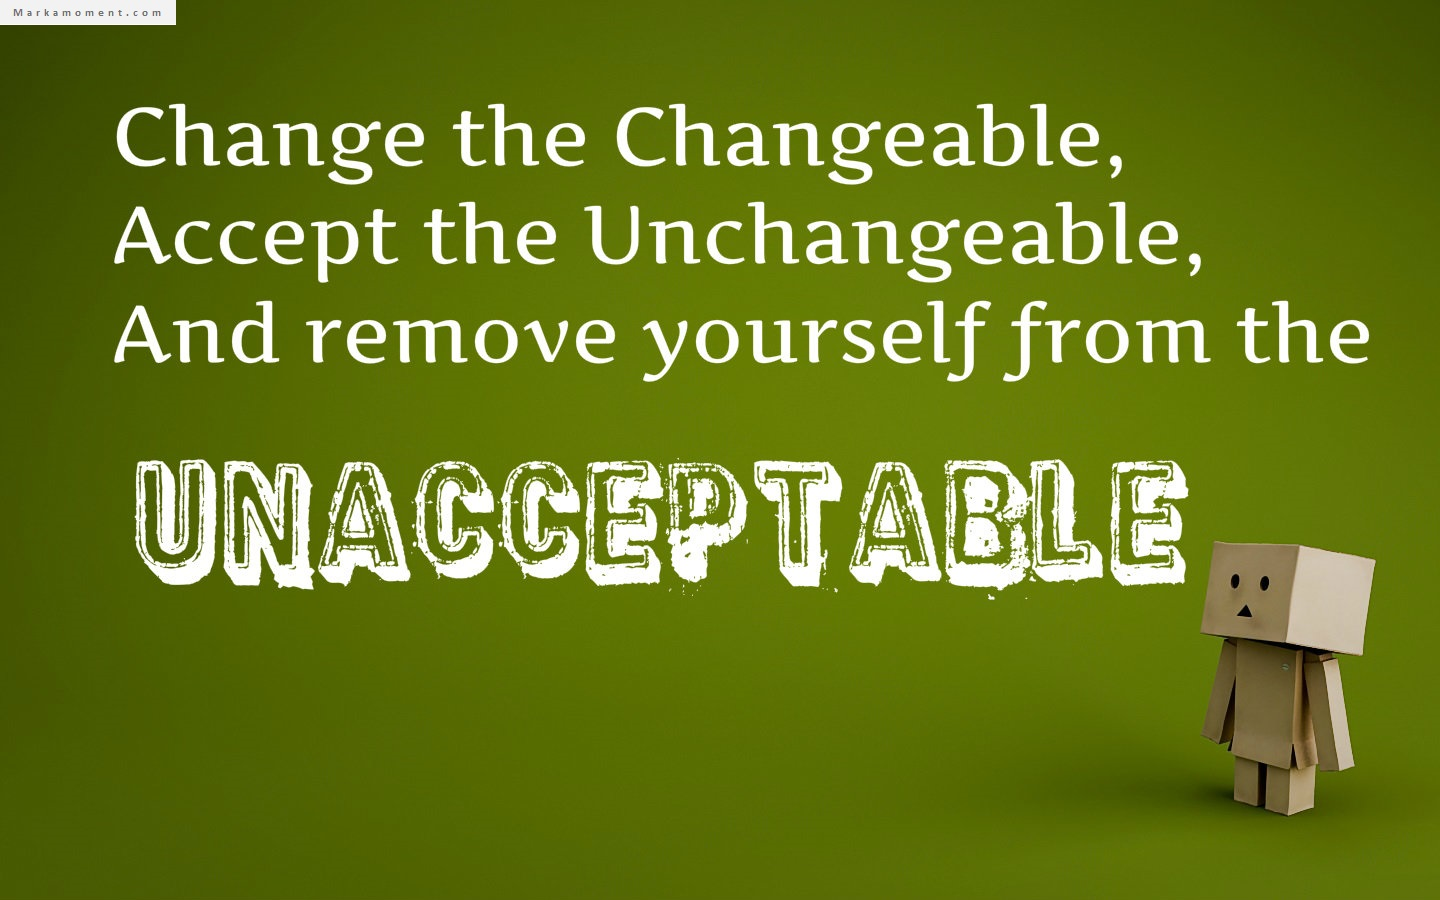 Change the changeable, accept the unchangeable, and remove yourself from the unacceptable. Denis Waitley